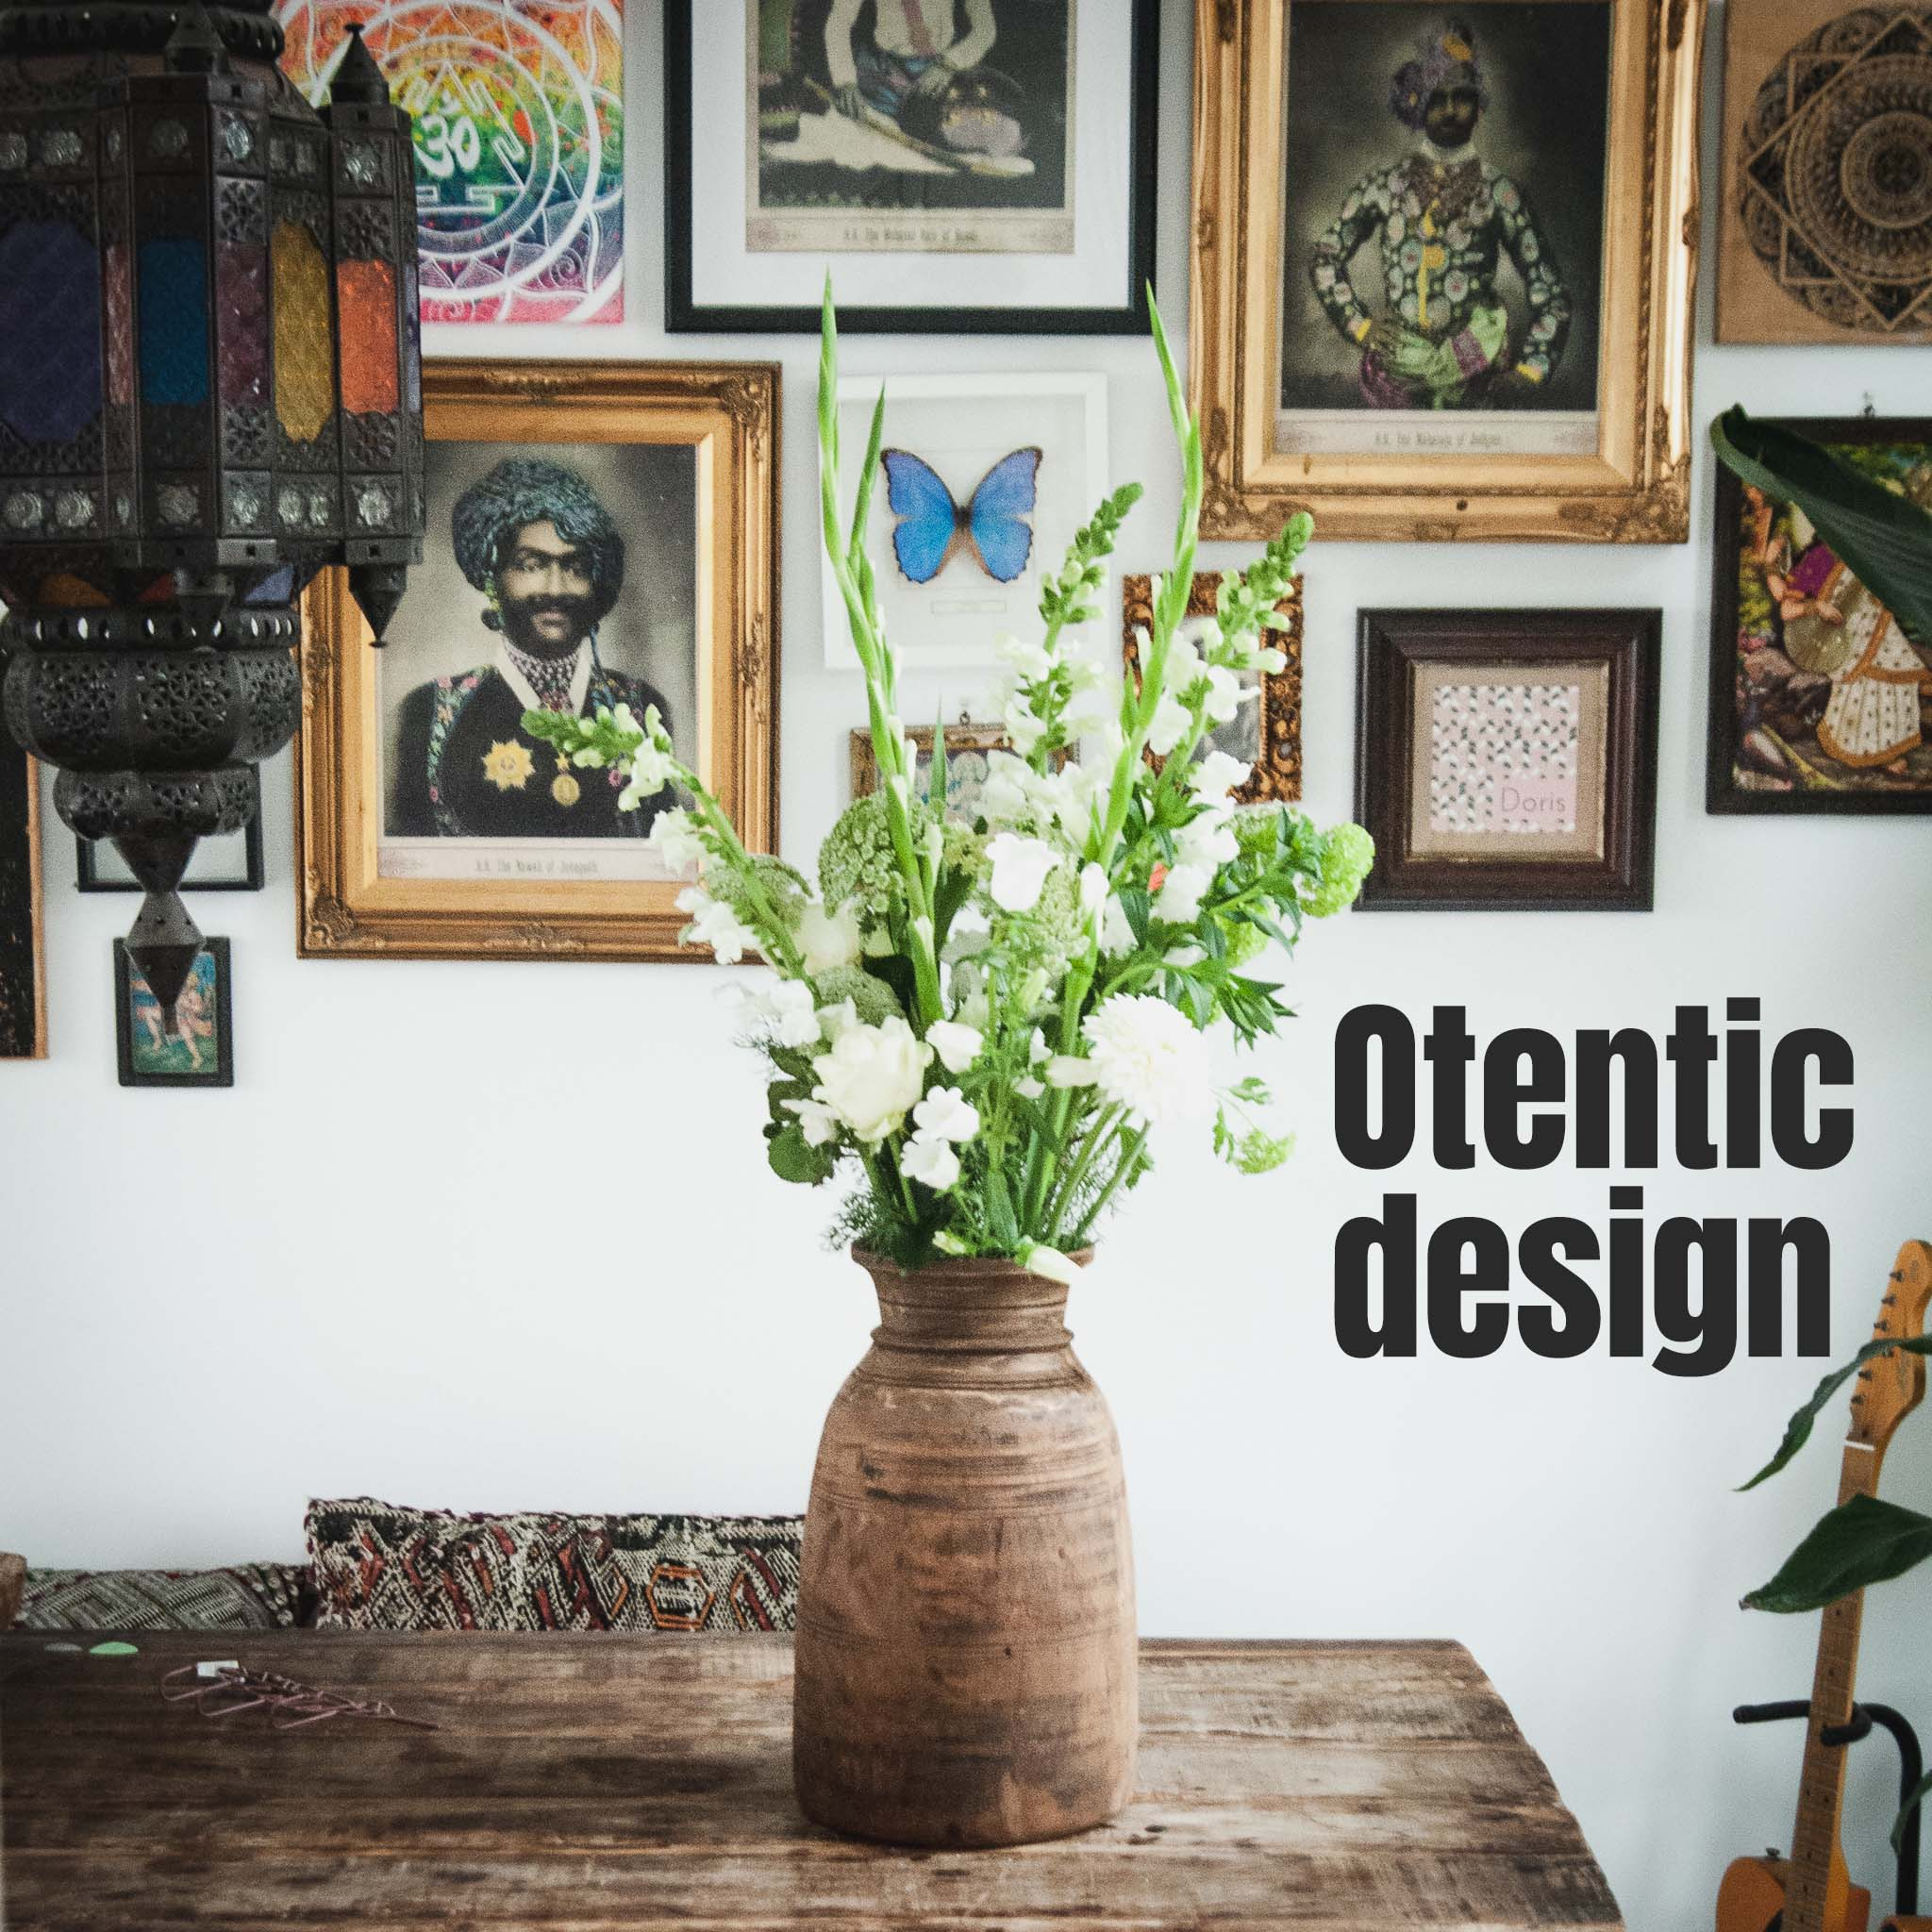 otentic design